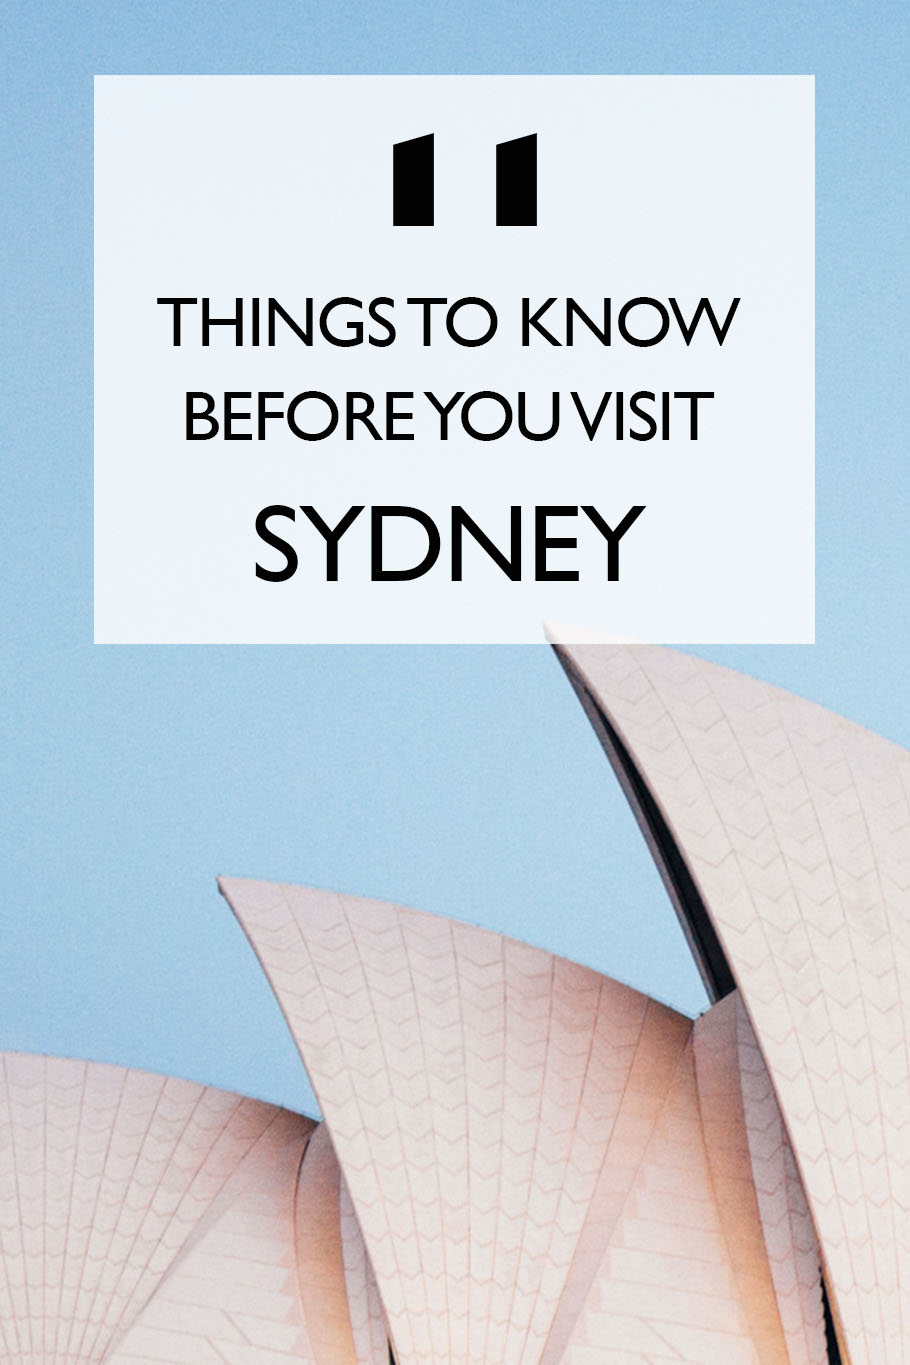 11 Things To Know Before You Visit Sydney